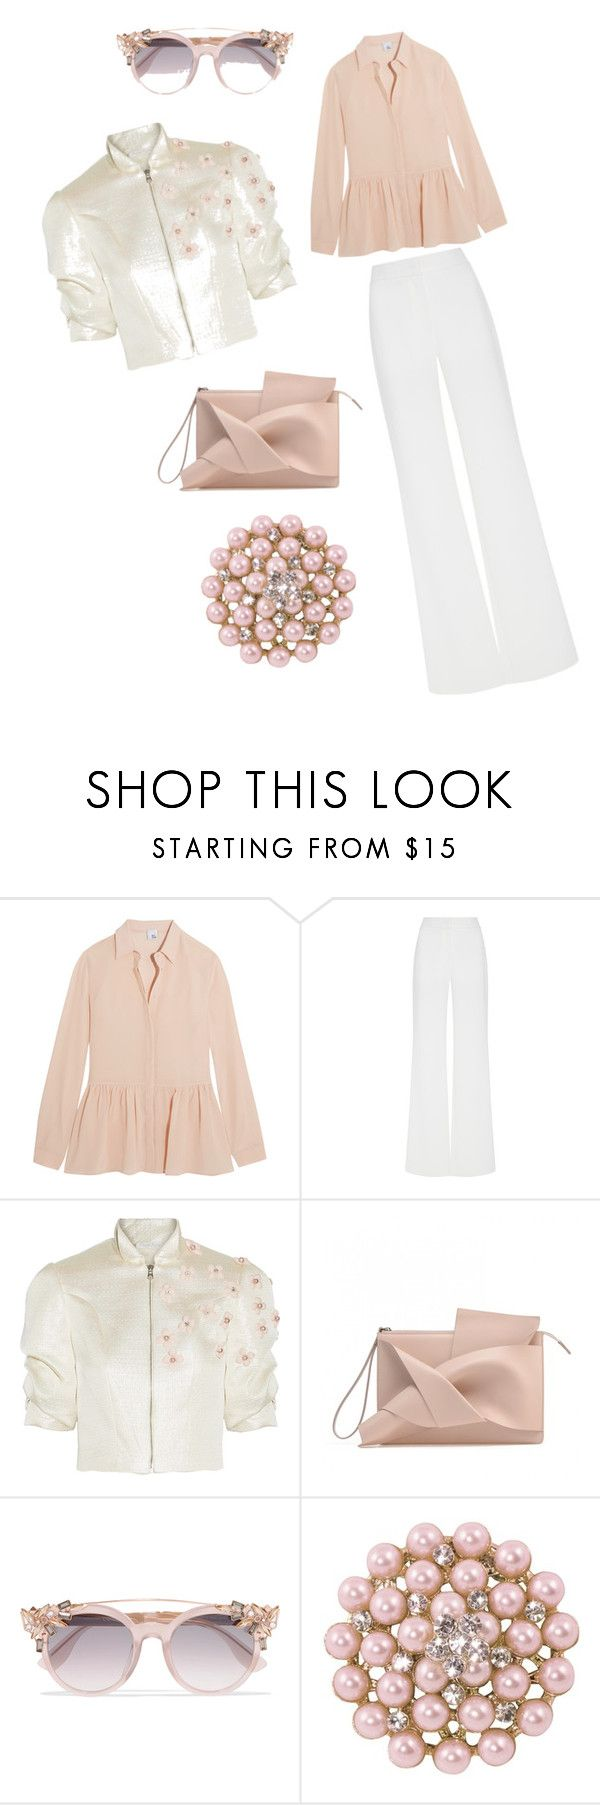 """""""PInk"""" by mariella-montanaro on Polyvore featuring Iris & Ink, Alexis Mabille, Reem Acra and Jimmy Choo"""